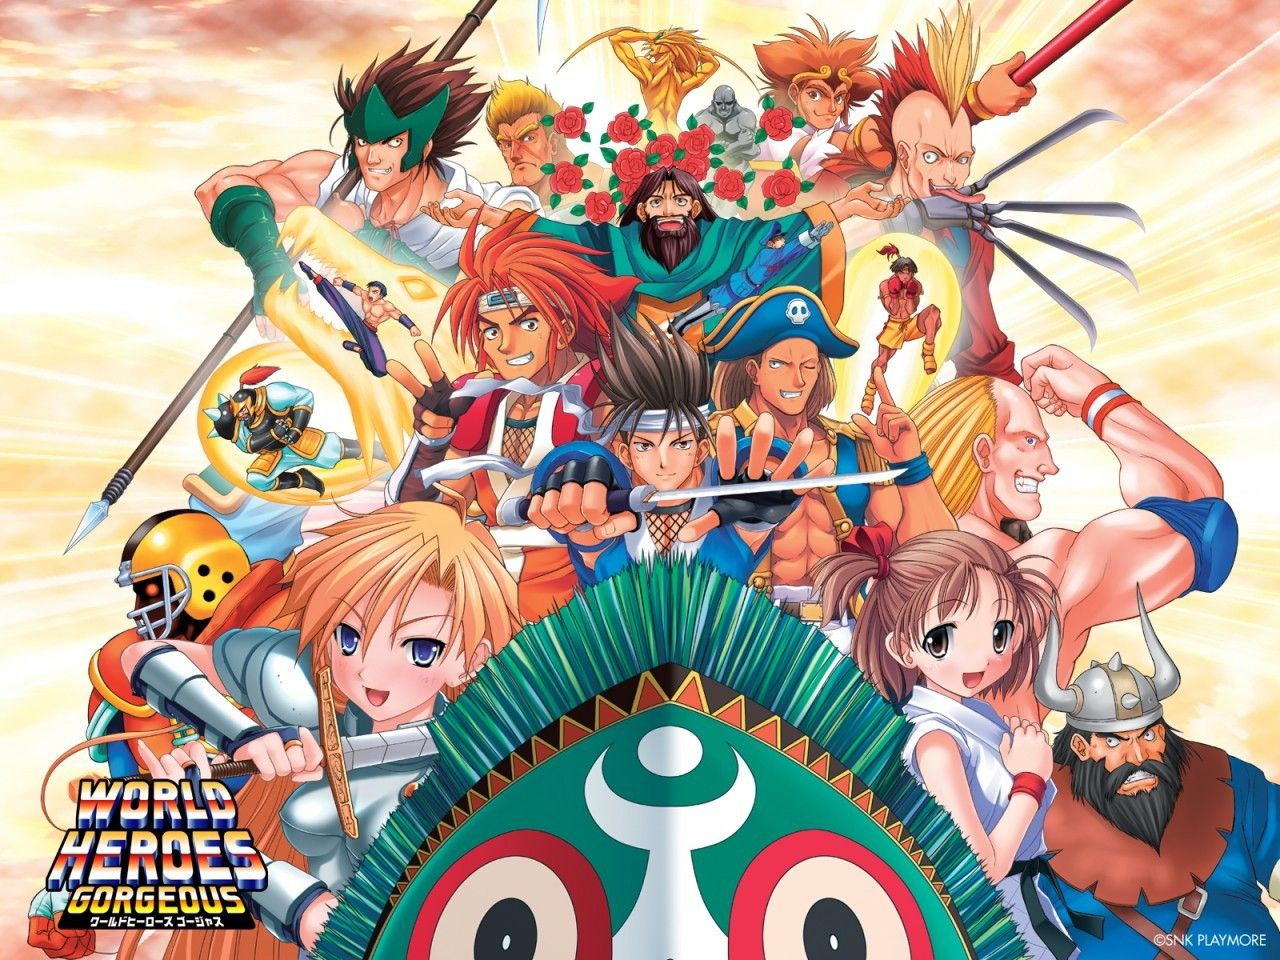 World Heroes Gorgeous Snk Hero World Video Game Genre Art Of Fighting